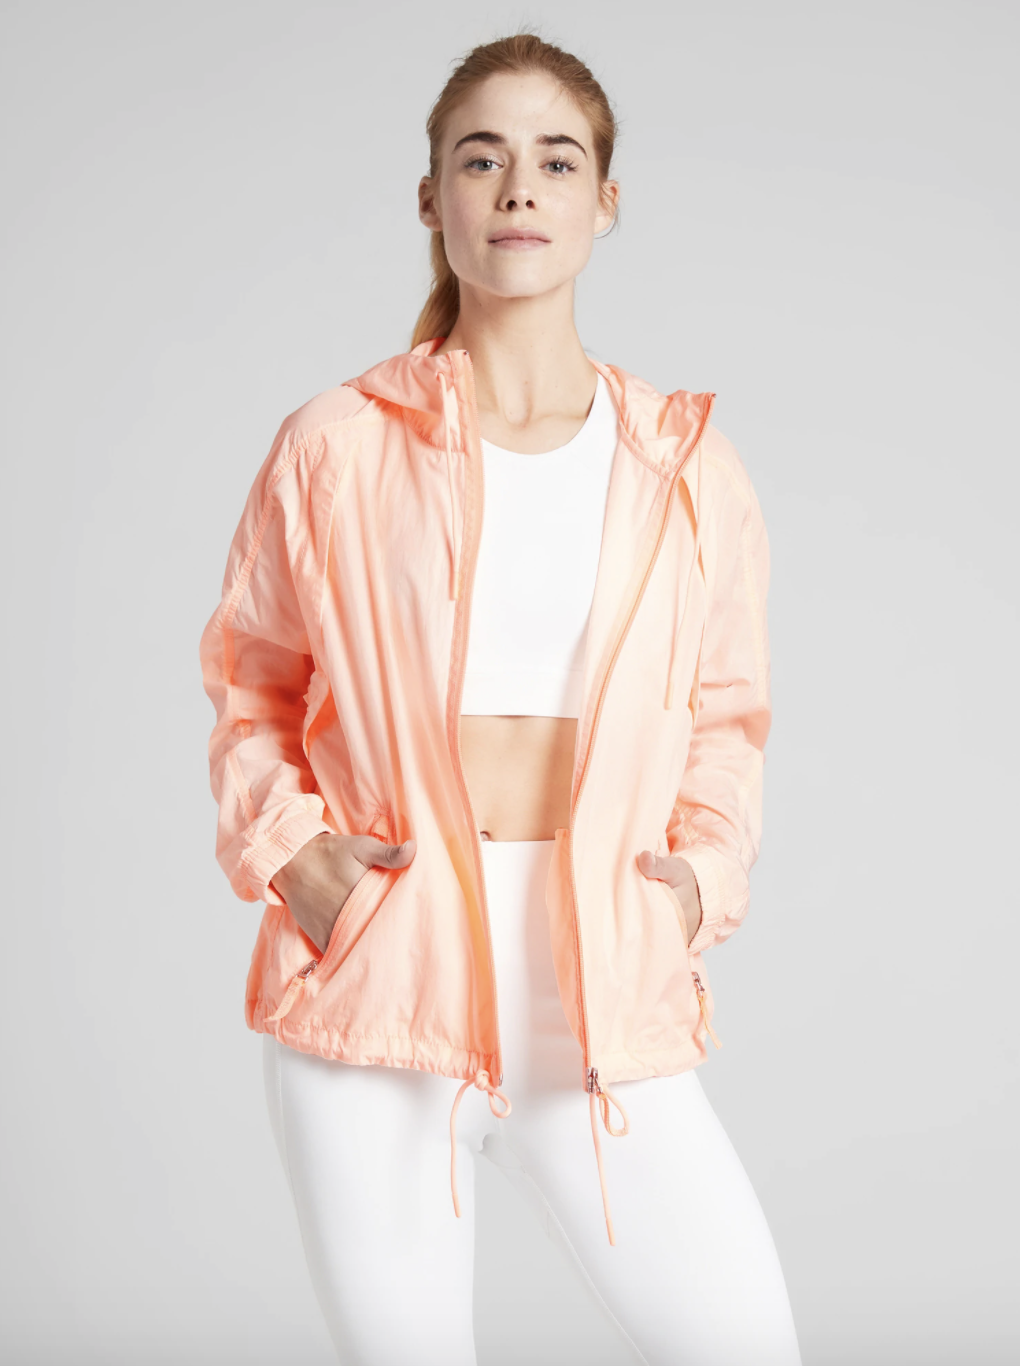 A model wearing the jacket, which has a zipper front, a hood, and side pockets